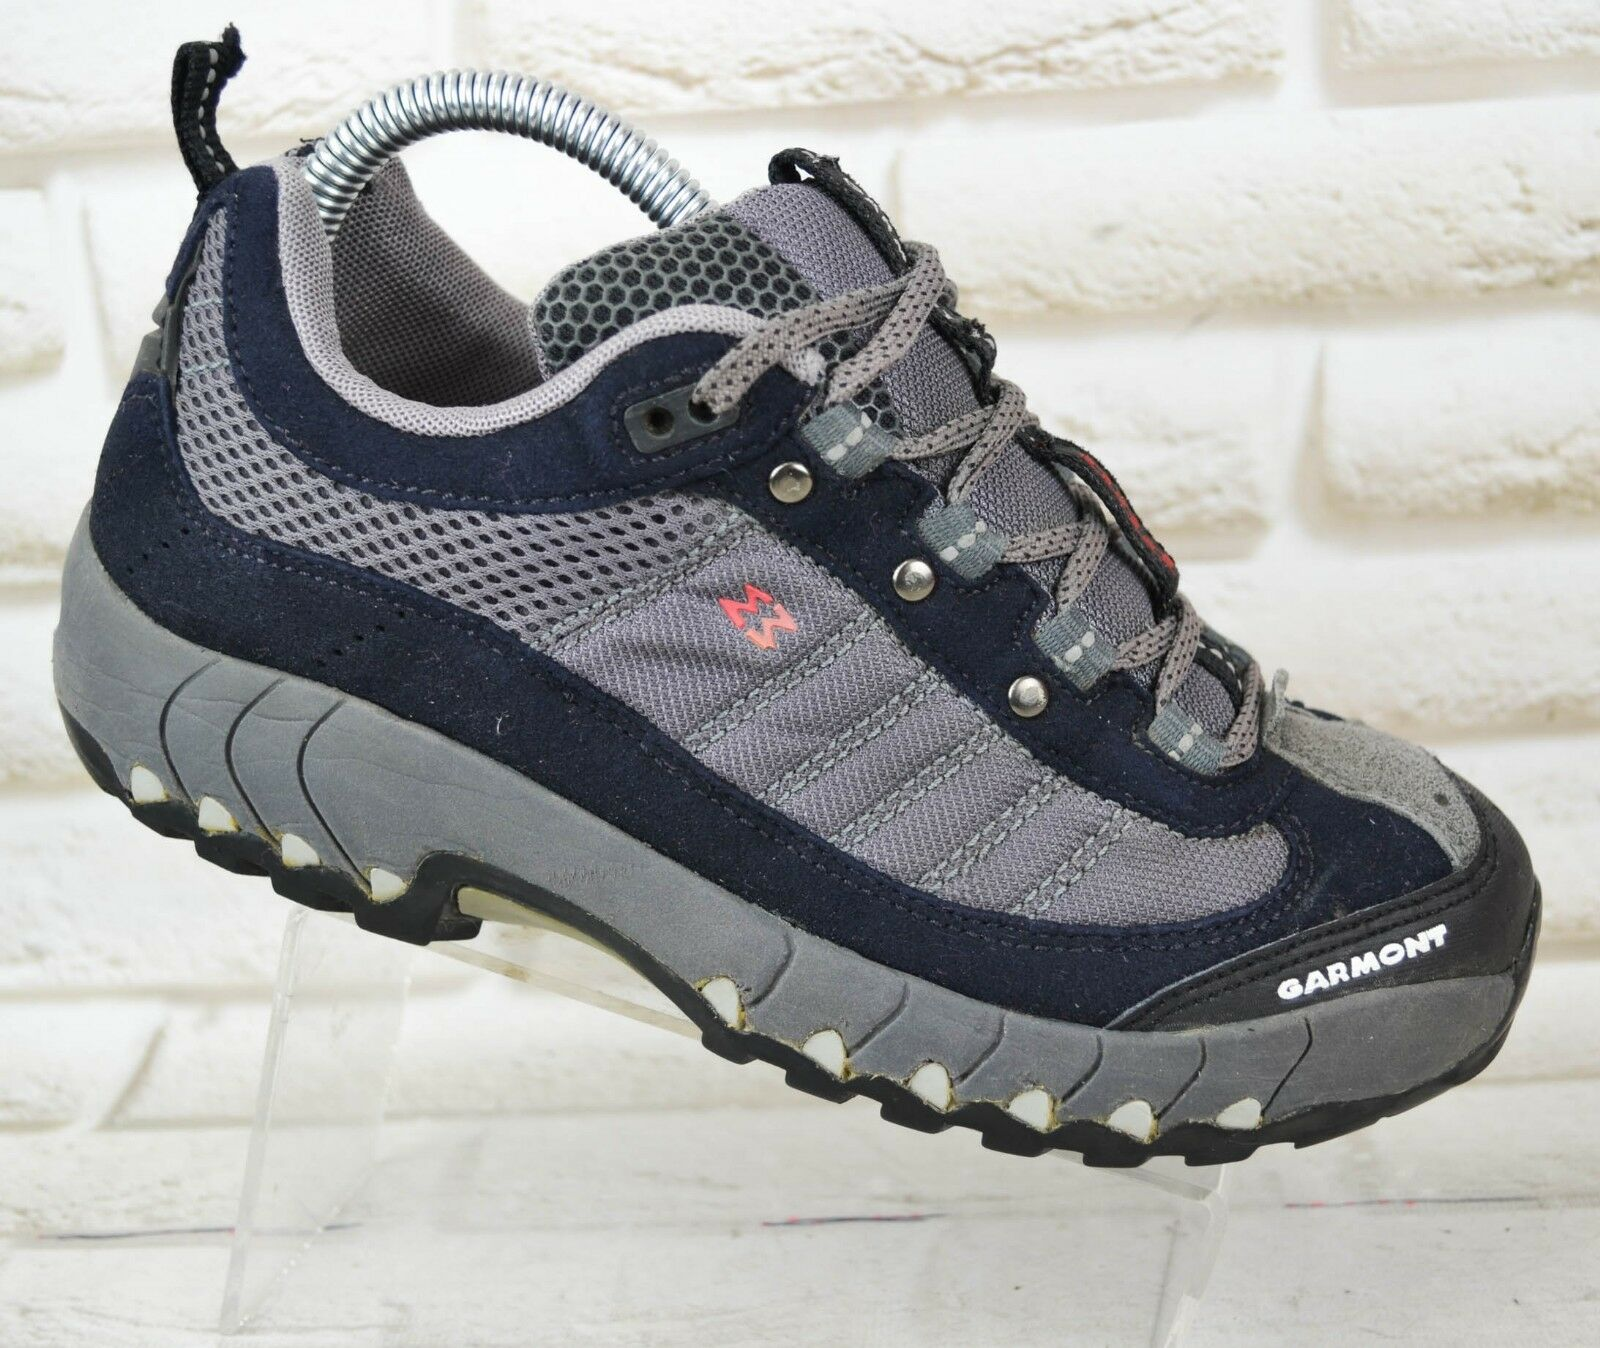 GARMONT ADD Womens Grey Black Walking Trail shoes Vibram Boots Size 5 UK 38 EU